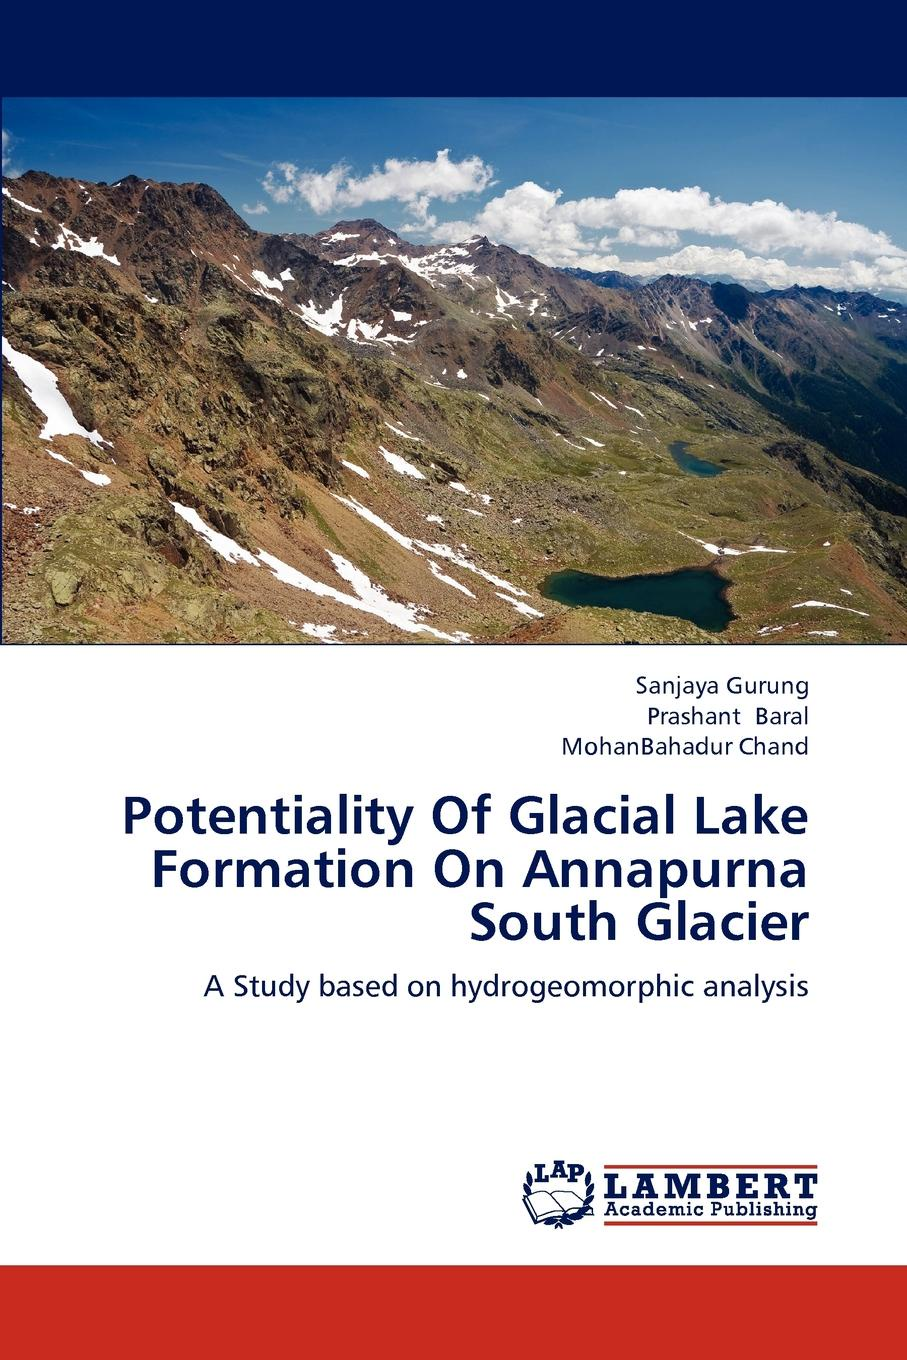 Gurung Sanjaya, Baral Prashant, Chand Mohanbahadur Potentiality of Glacial Lake Formation on Annapurna South Glacier avifaunal diversity in raniban kaski district